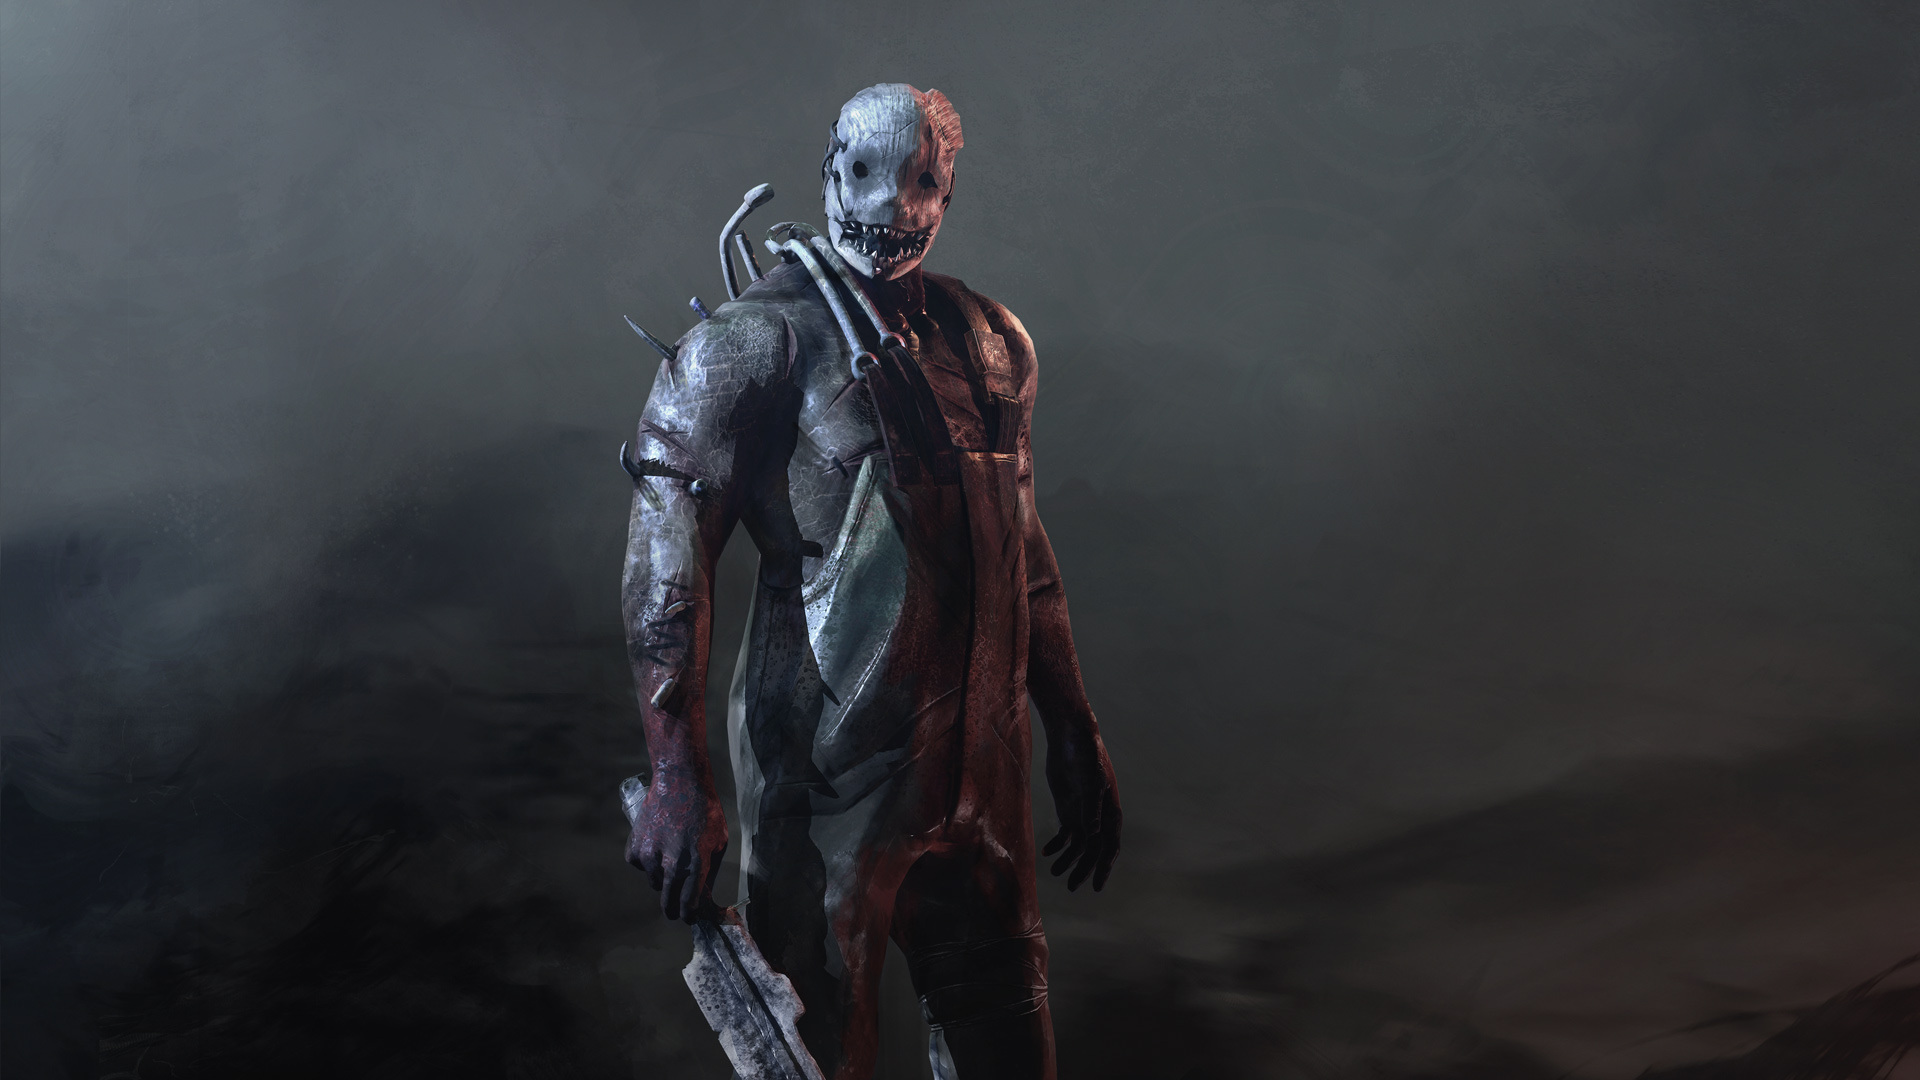 Dead By Daylight Wallpapers 23 Wallpapers Adorable Wallpapers